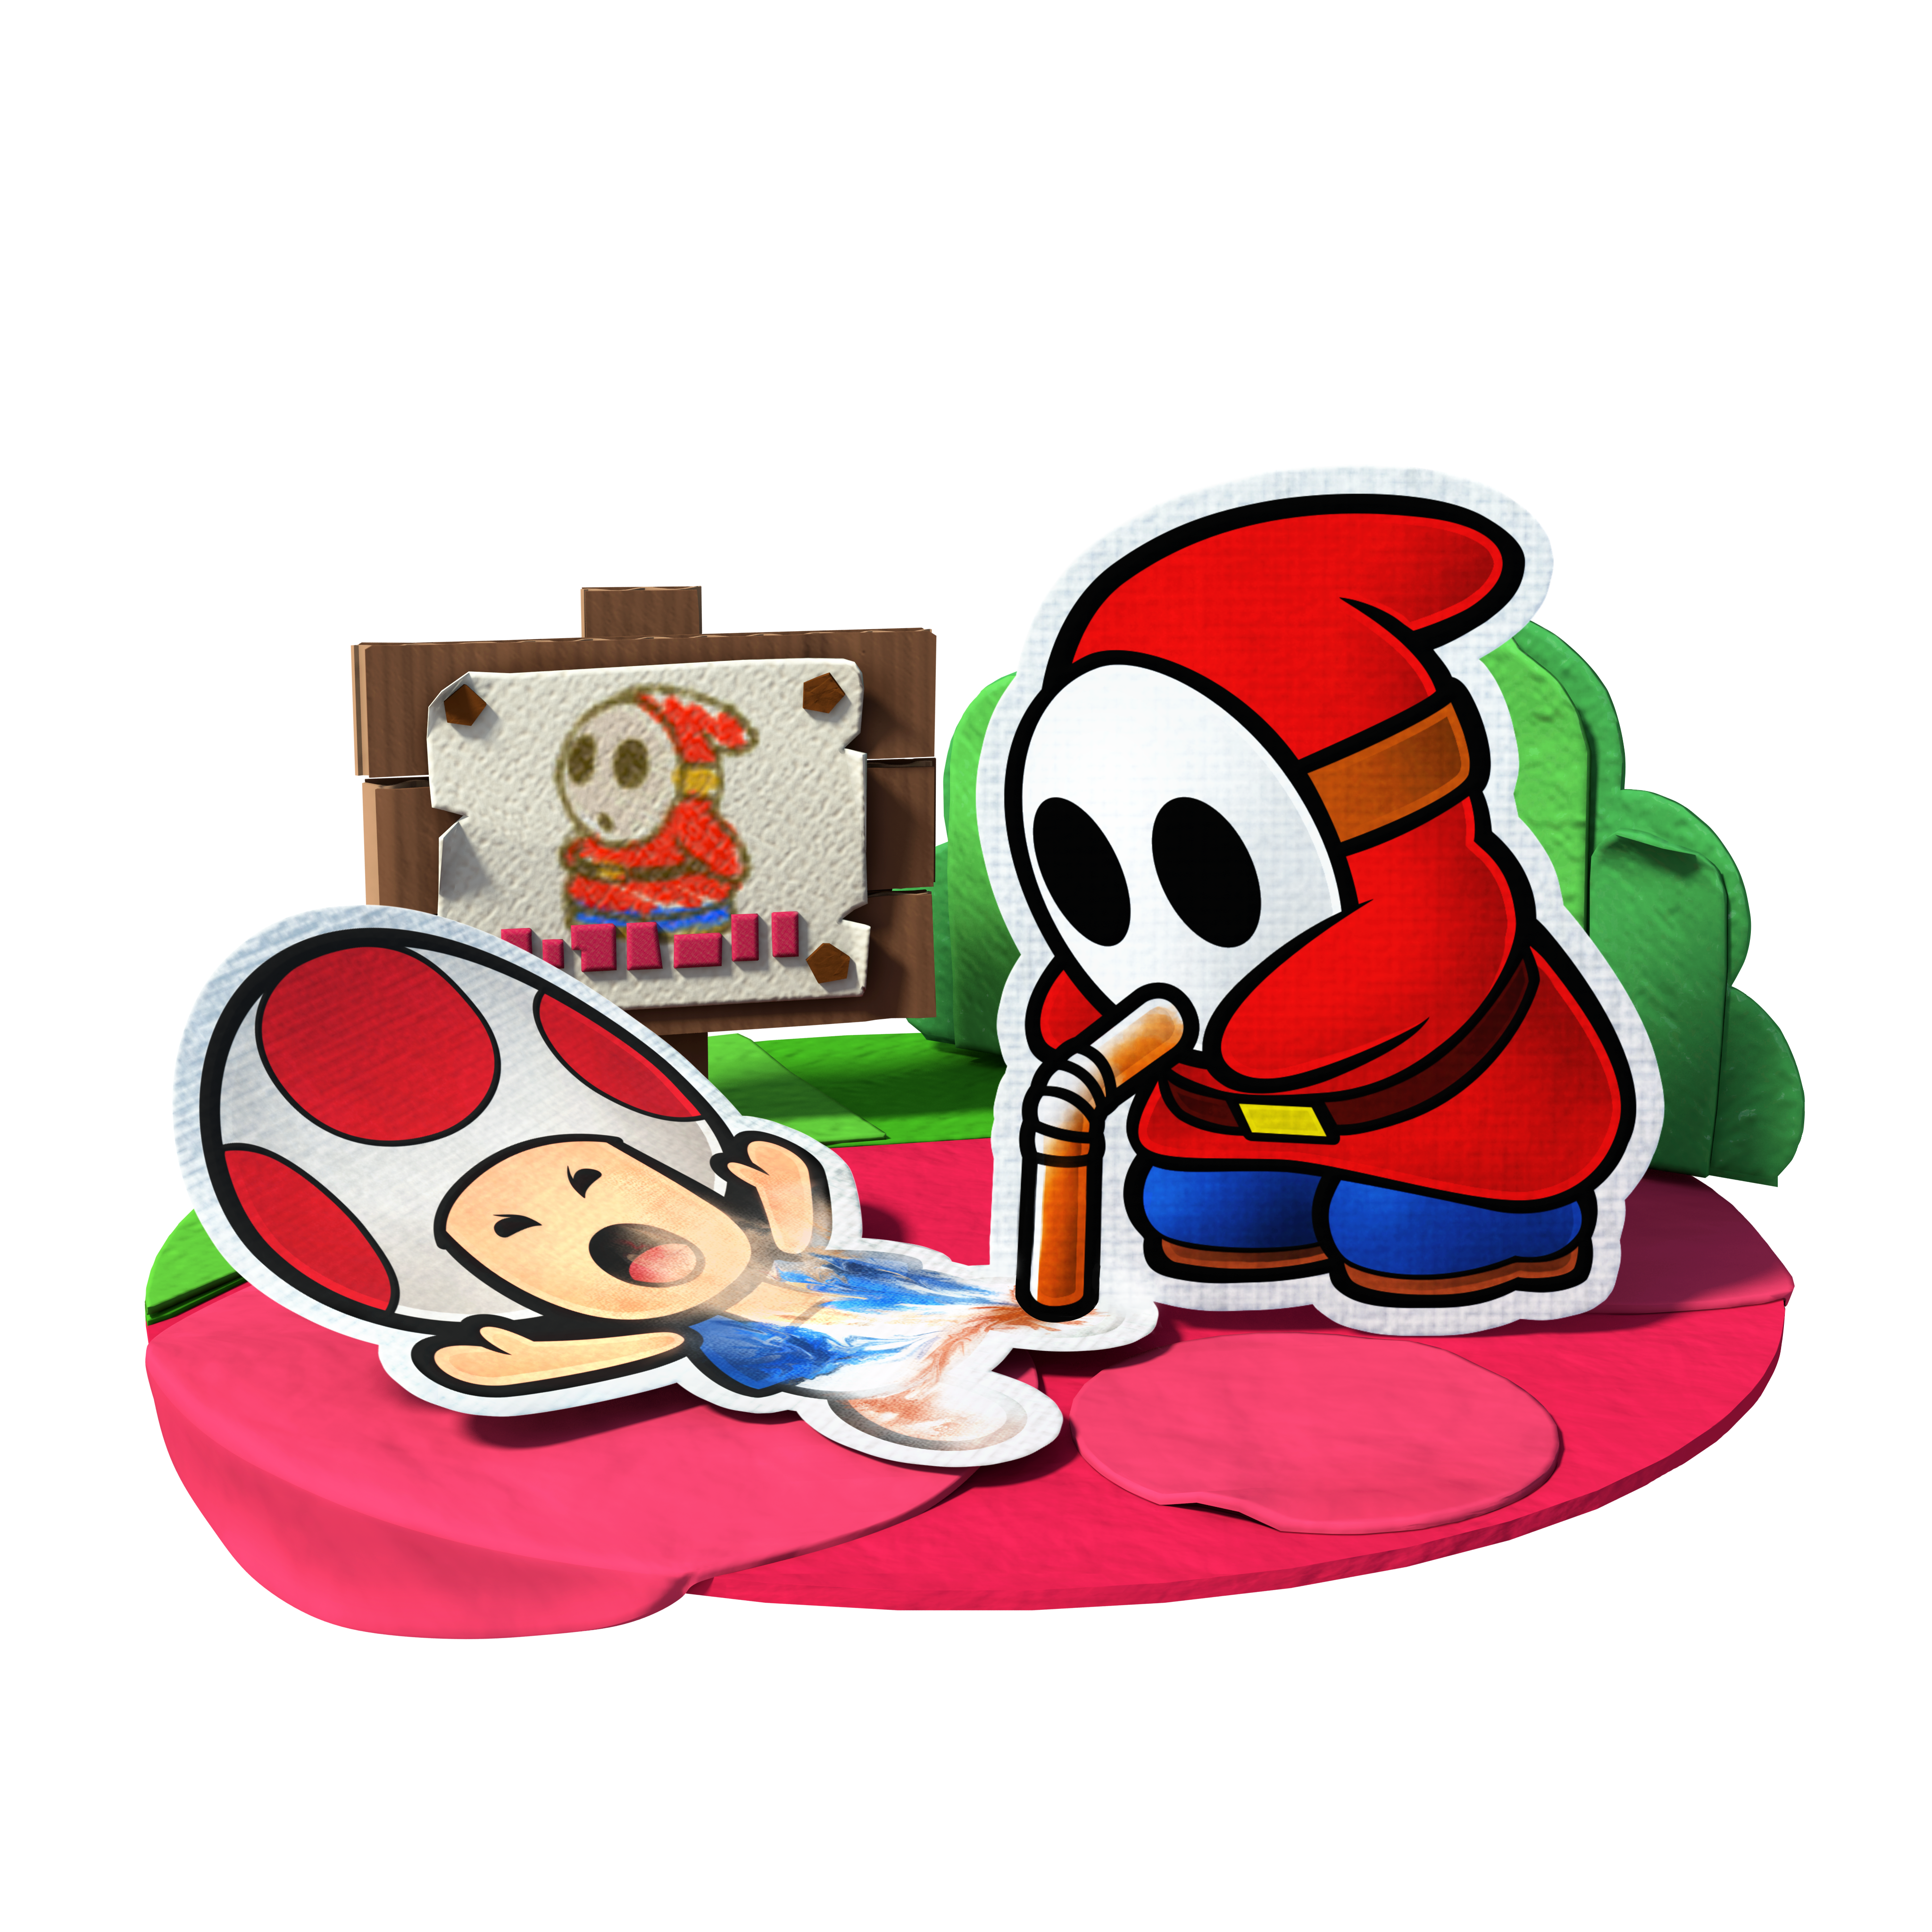 Toad and slurp guy. Shy clipart gloomy